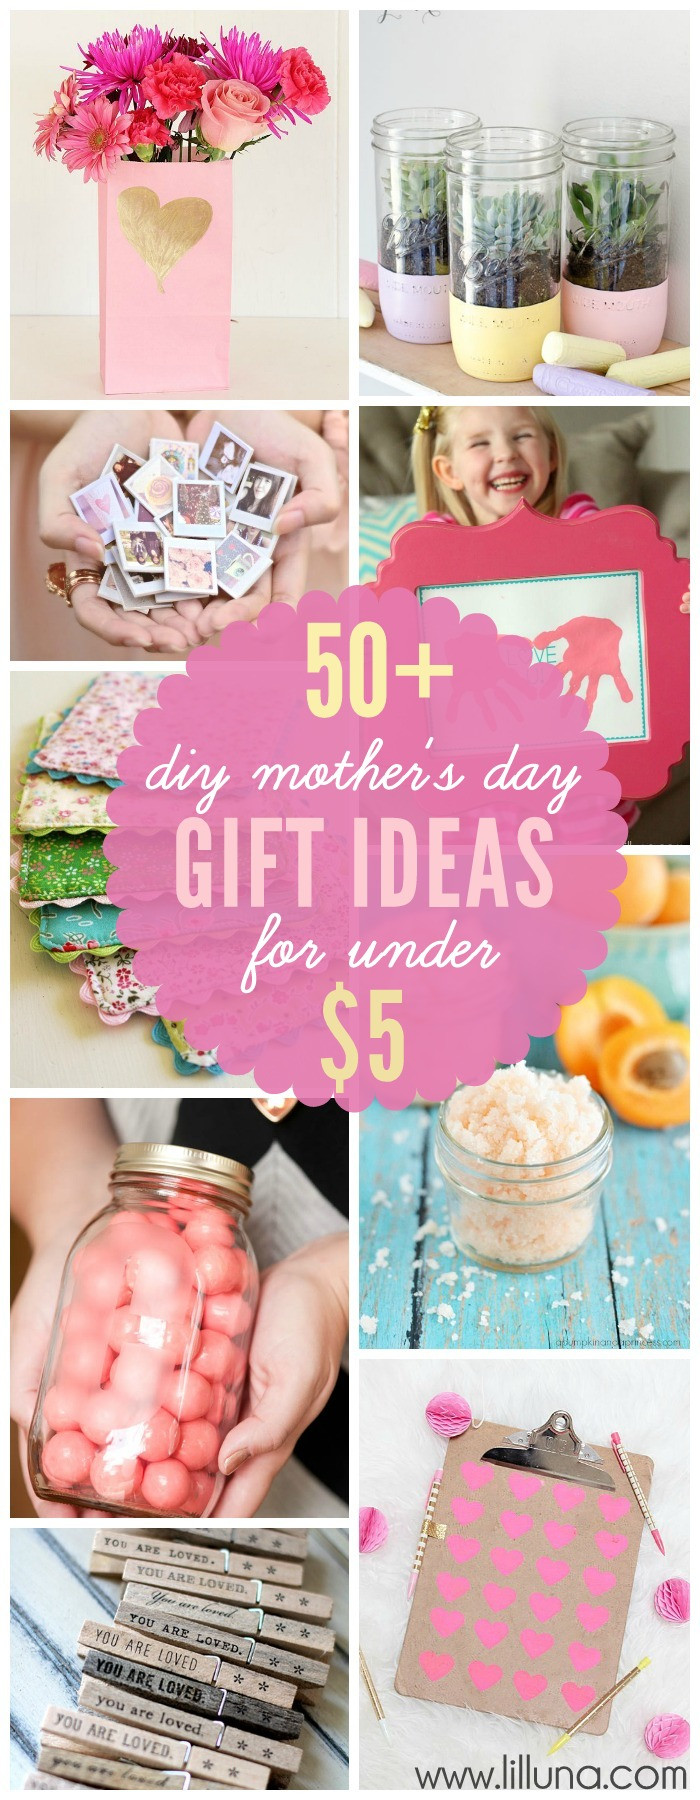 Best ideas about Mother Day Gifts DIY . Save or Pin DIY Mother s Day Gifts for under 5 Now.